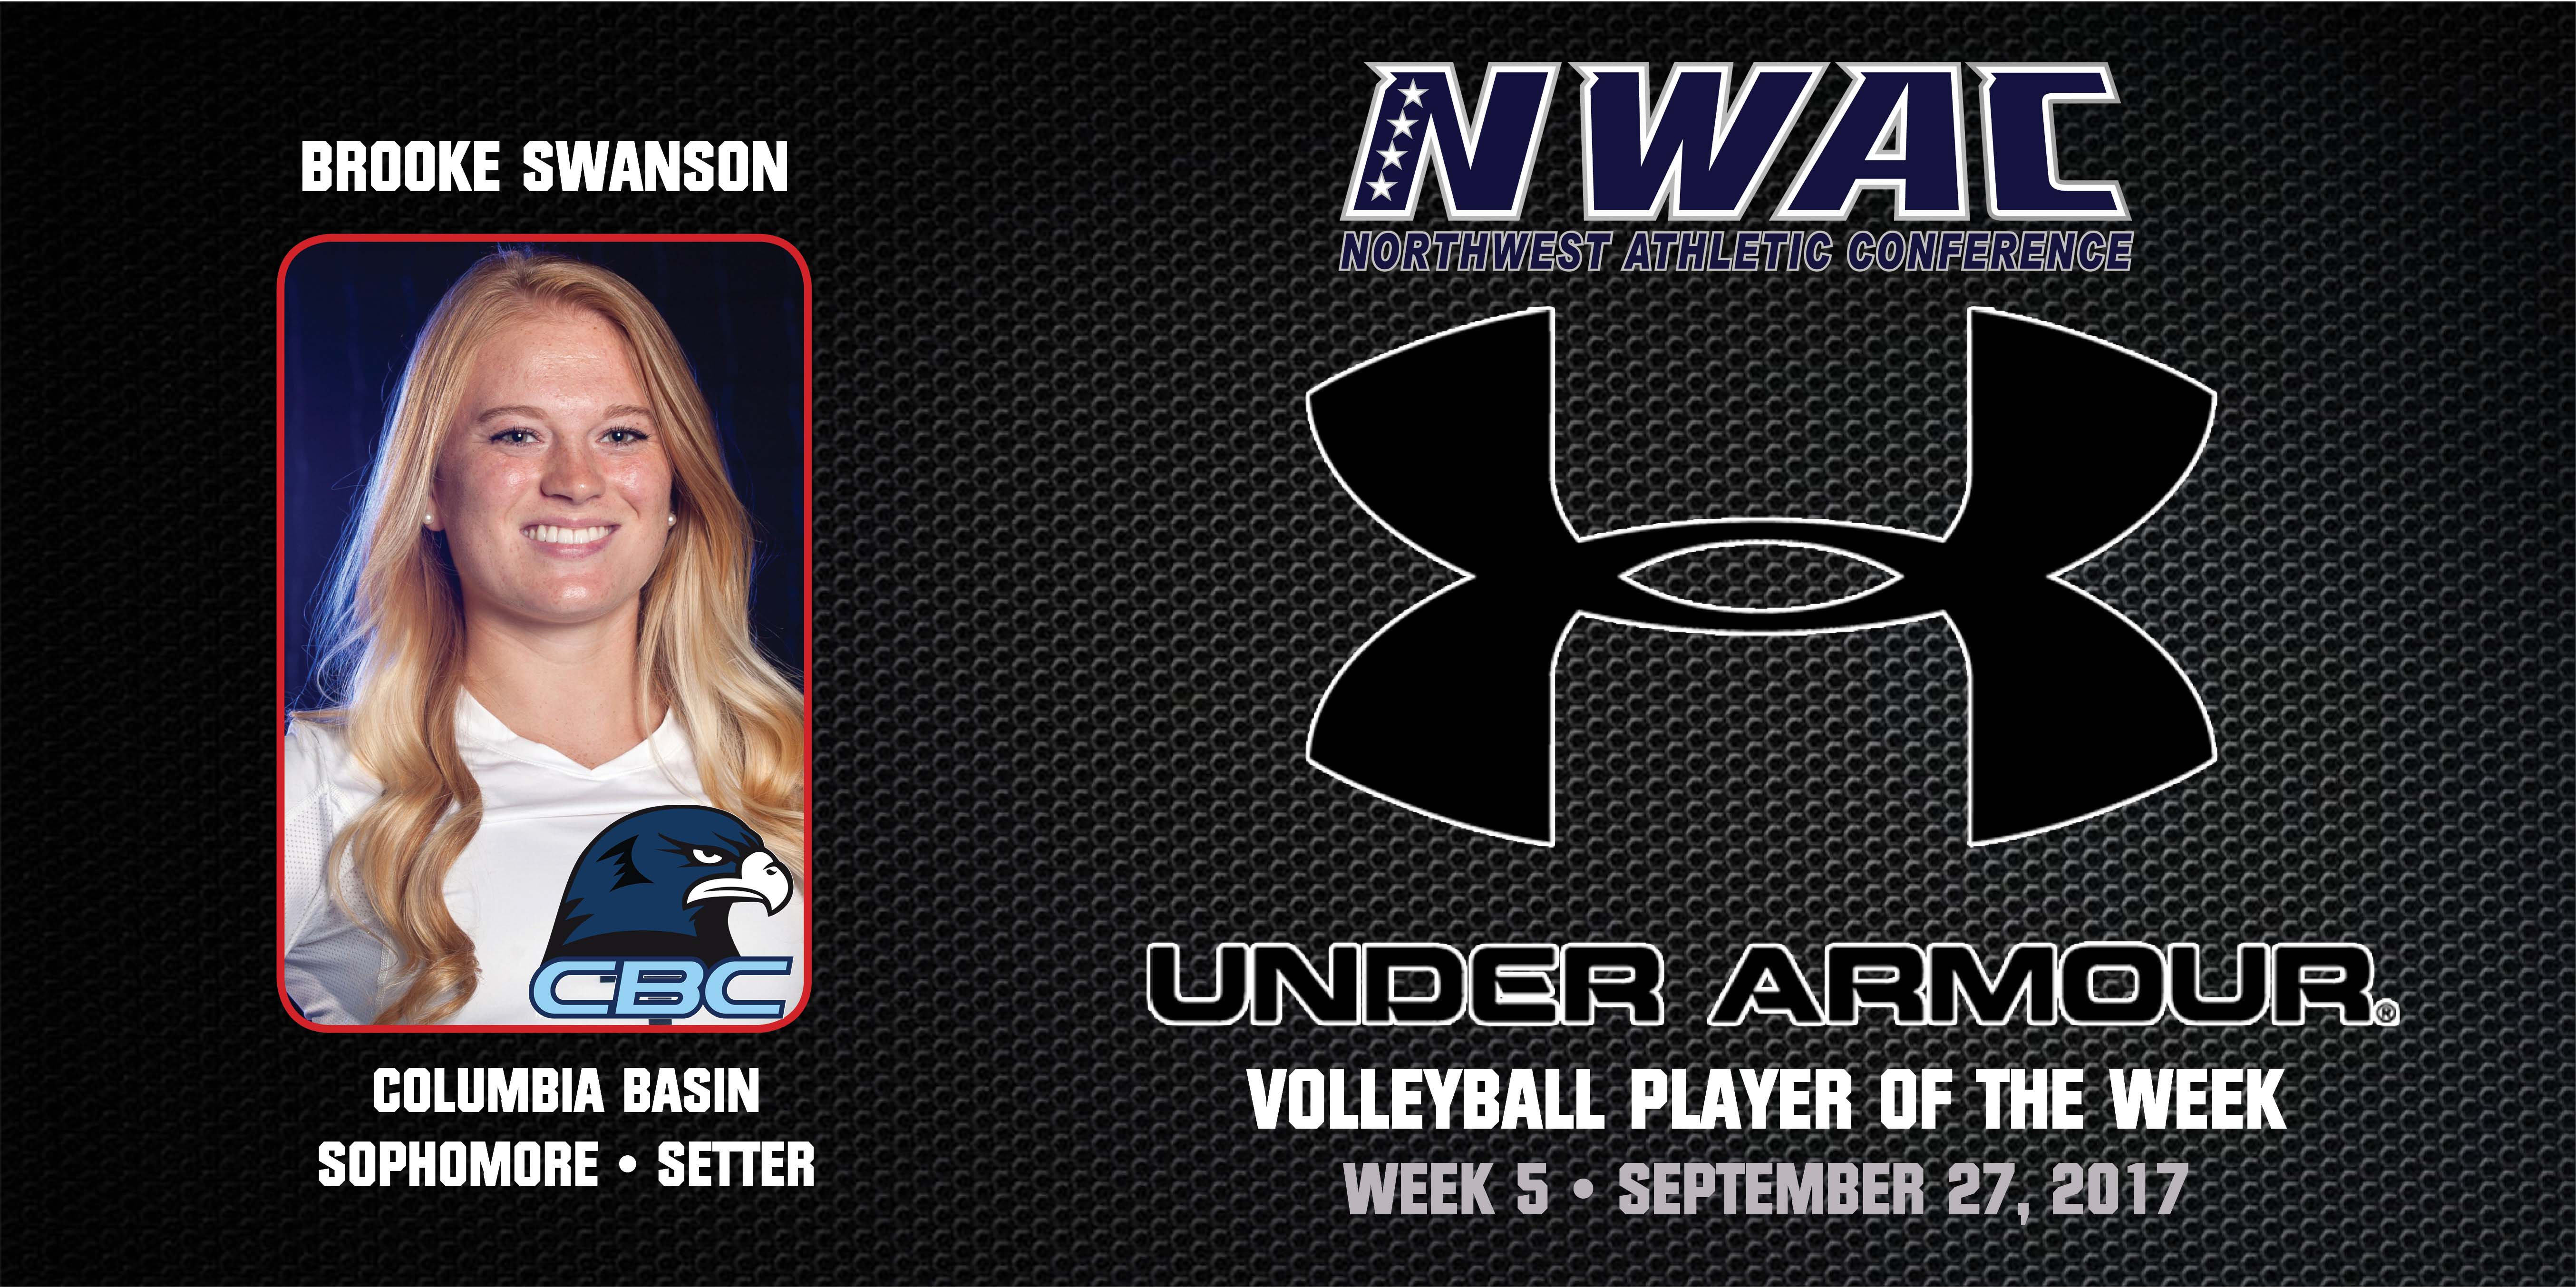 Brooke Swanson Under Armour Player of the Week